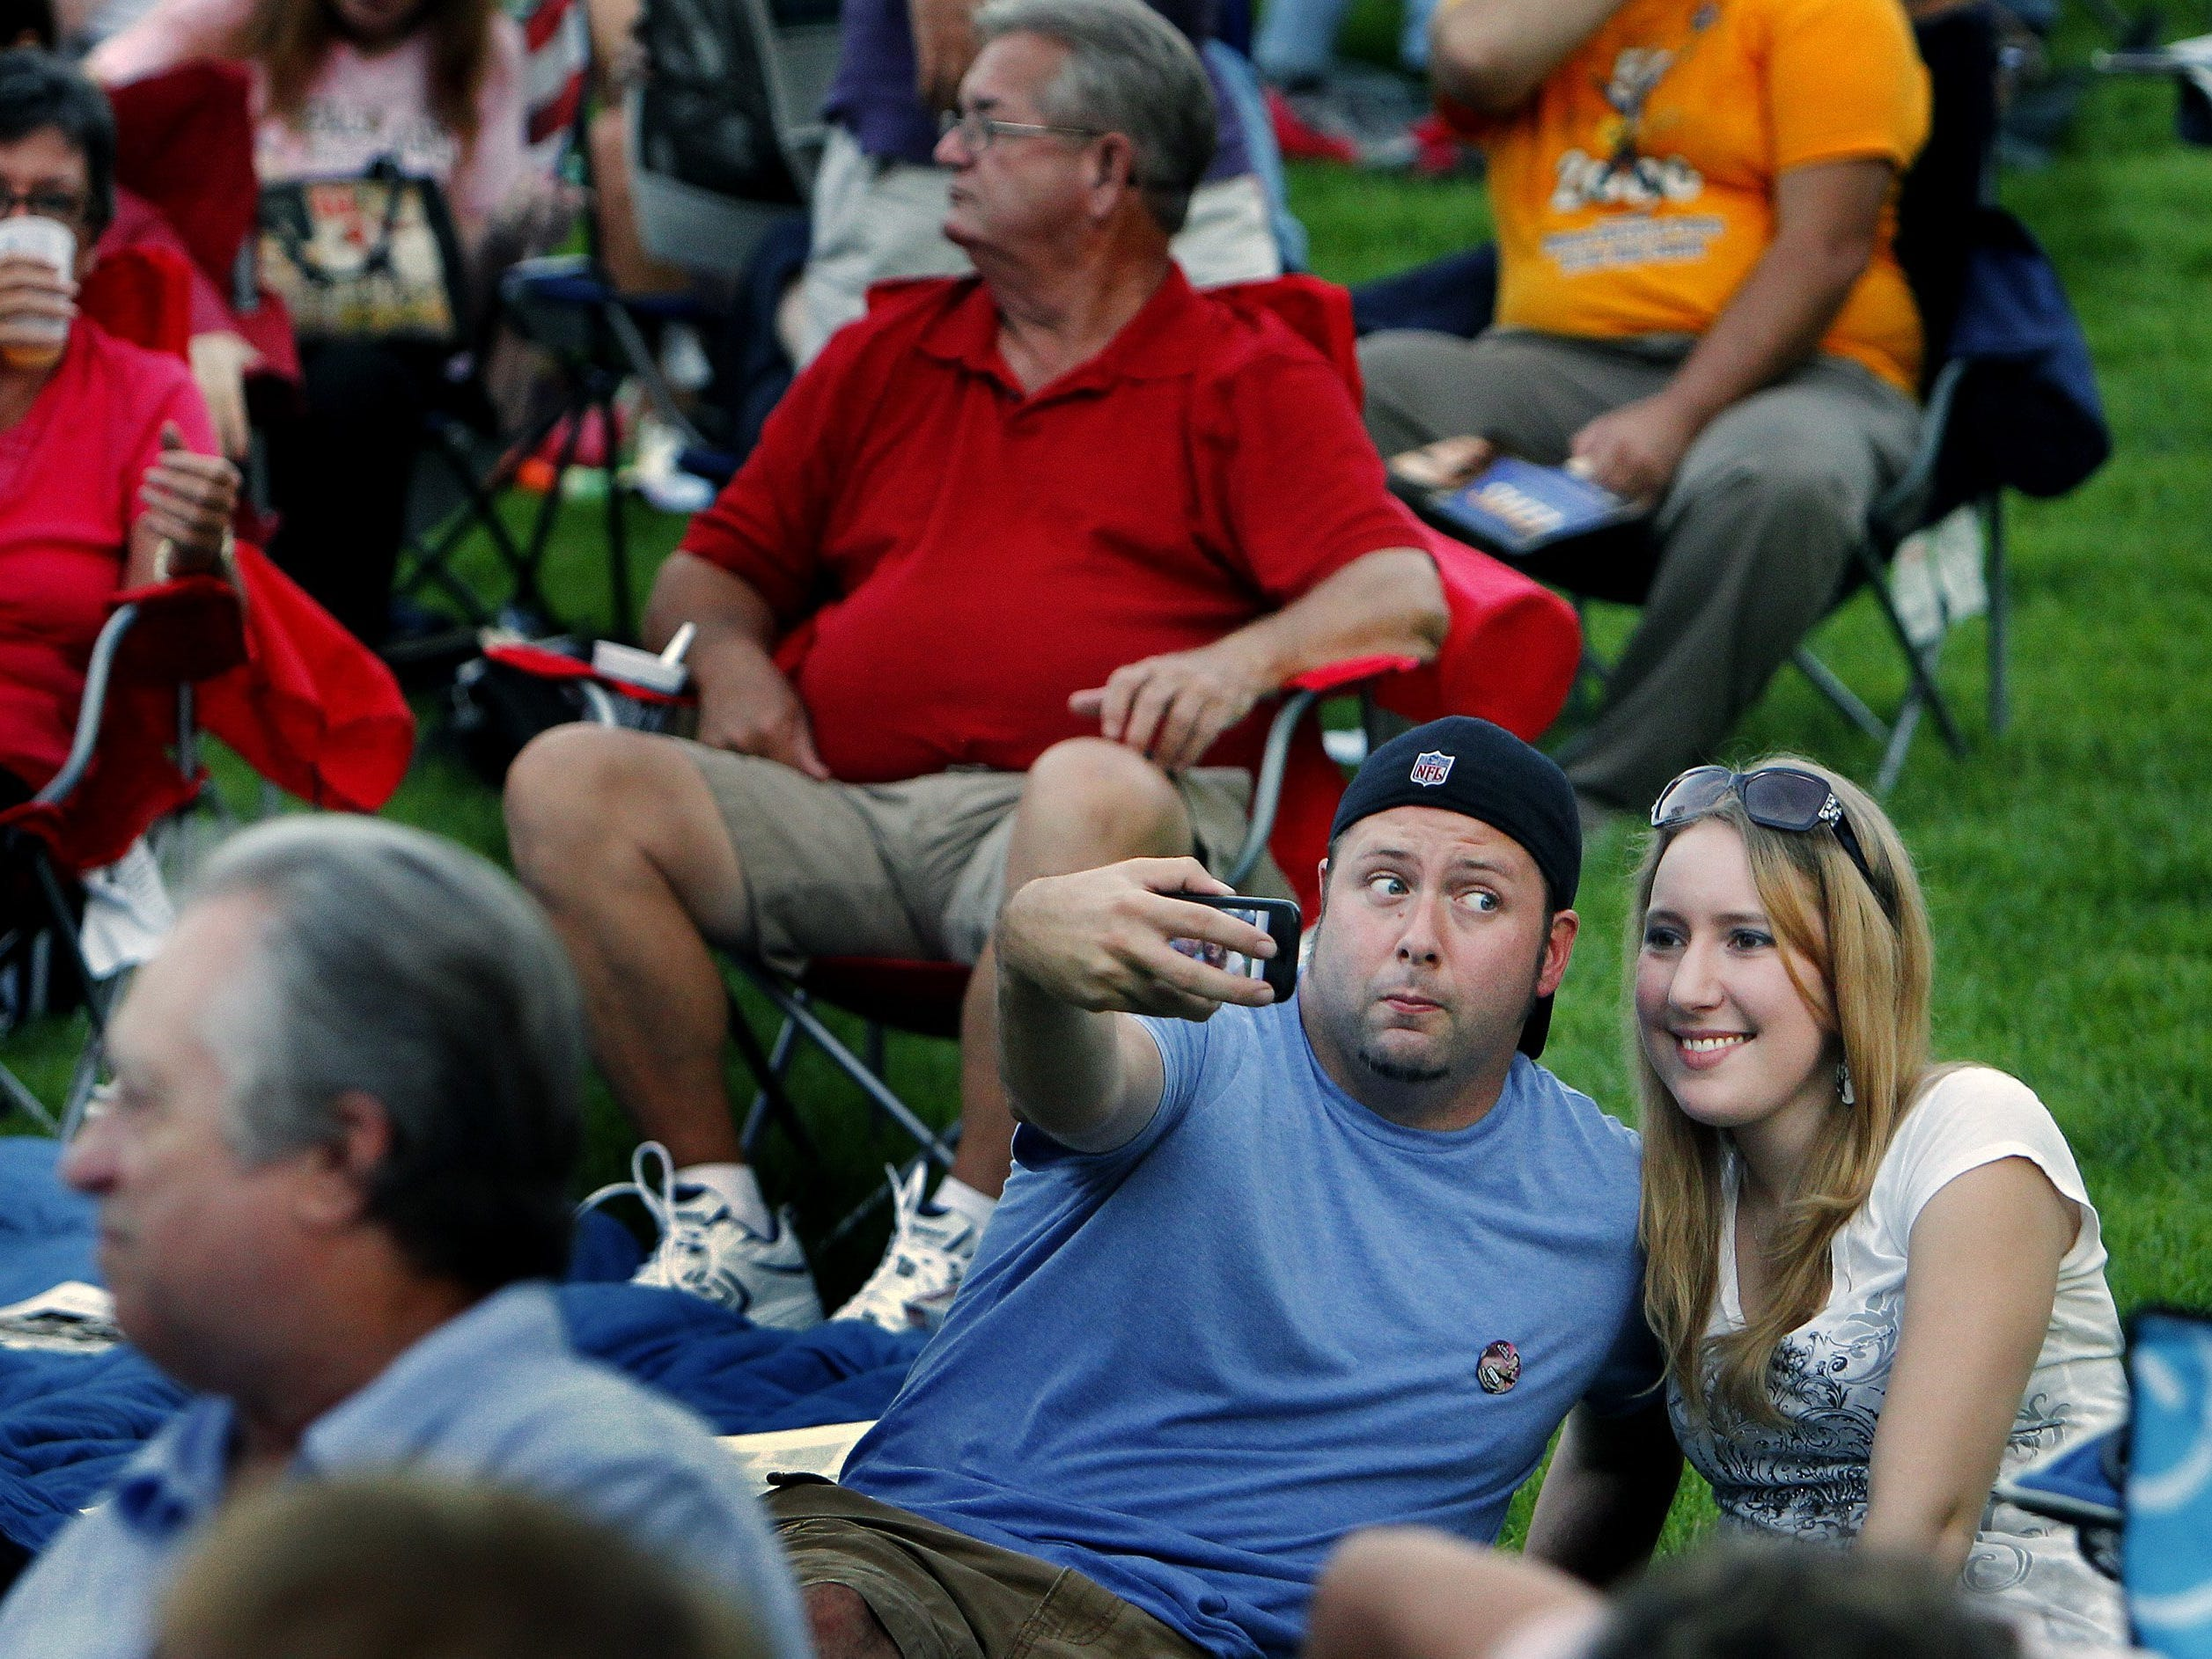 081011 INSIDE STAND ALONE - August 9, 2011 - Shane McCrea (left) makes a funny face as he strikes a pose while taking a picture with friend Jamie Hanskiewicz (cq) (right) during the Rock 'n' Roll Anniversary Concert at Levitt Shell in Overton Park Tuesday evening. Hundreds gather at for the special kick-off event for Elvis Week that commemorates a performance by Elvis Presley in the shell that many historians now consider to be the first live rock 'n' roll concert. (Mark Weber/ The Commercial Appeal)